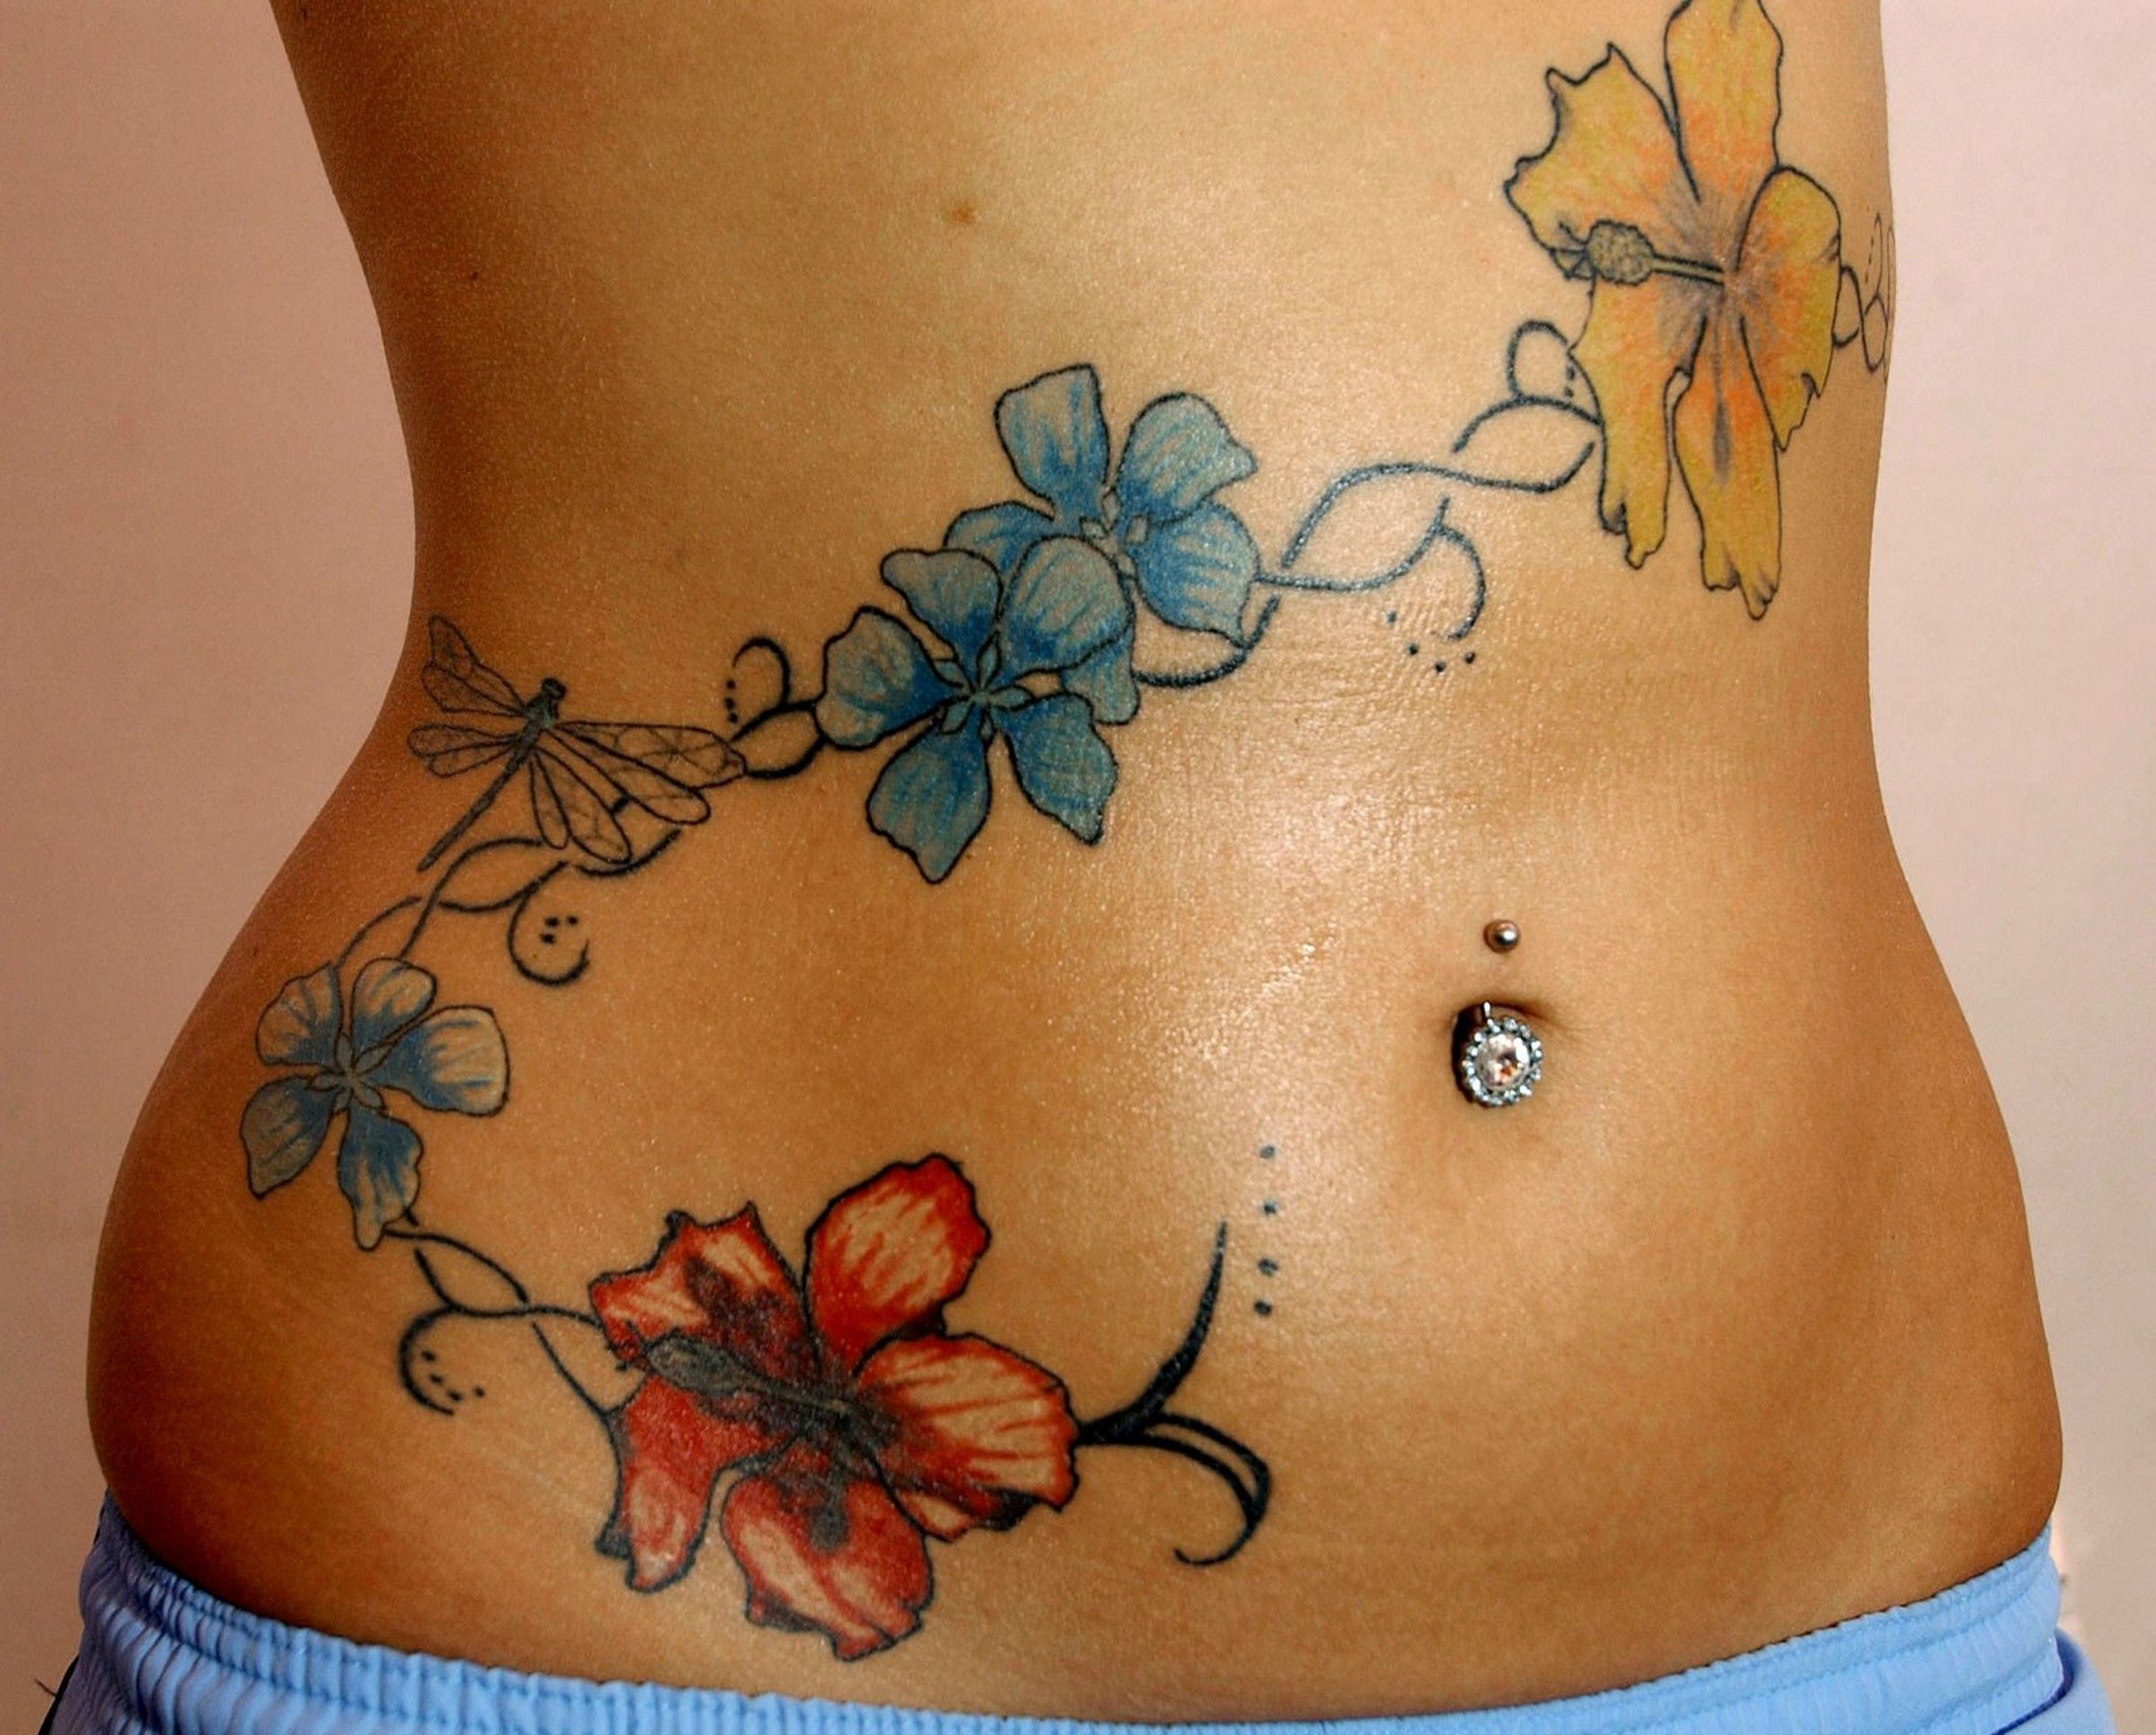 Tattoos for women with meaning flower tattoos and their meaning tattoos for women with meaning flower tattoos and their meaning lotus flower tattoos mightylinksfo